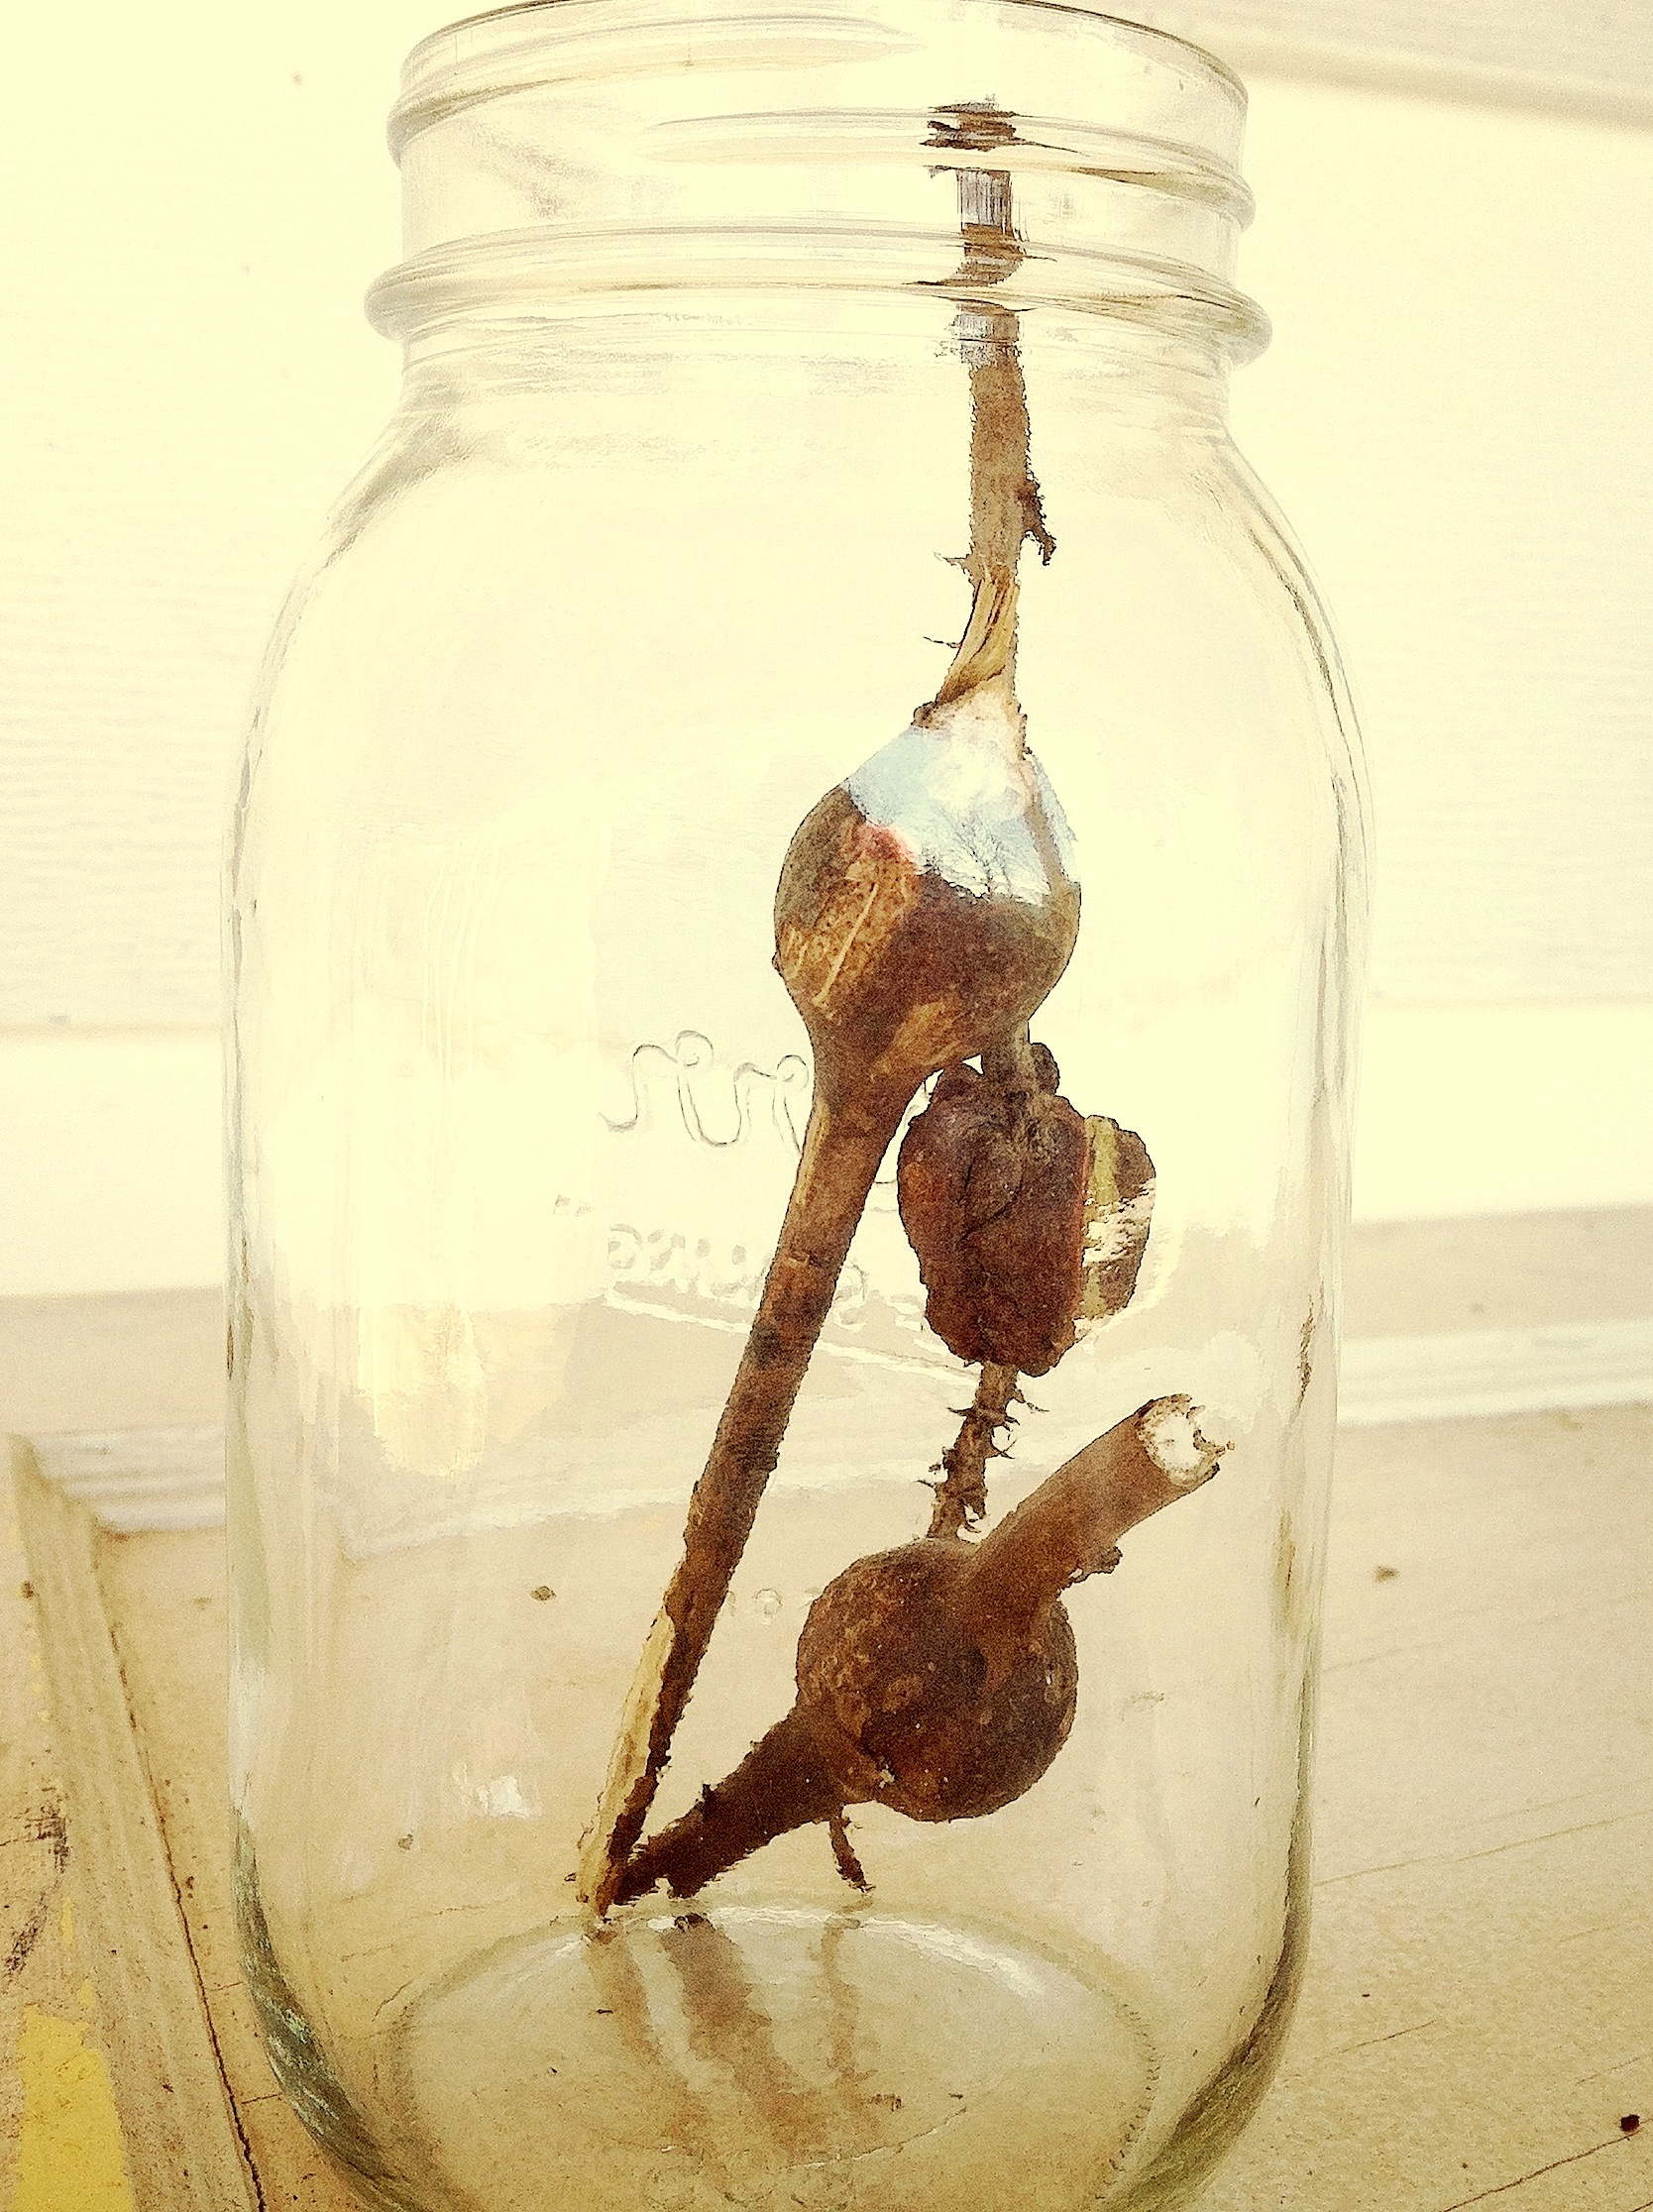 Goldenrod fly galls and blackberry knot galls in a jar.